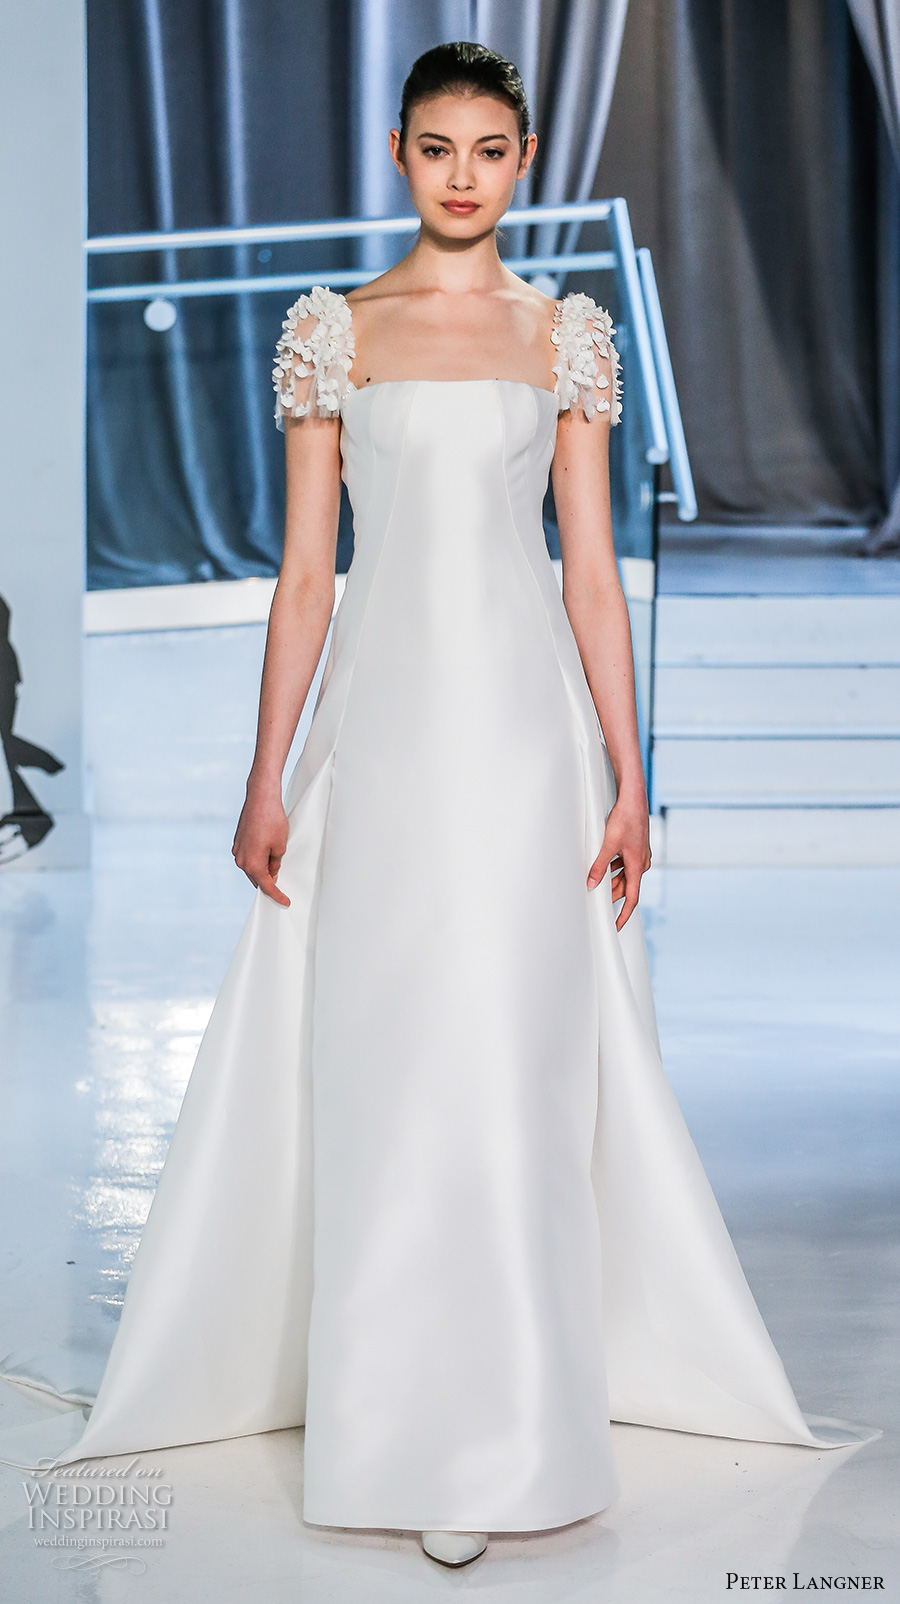 peter-langner-spring-2018-bridal-puff-sleeves-straight-across-neckline-simple-clean-elegant-sheath-wedding-dress-open-v-back-chapel-train-15-mv.jpg